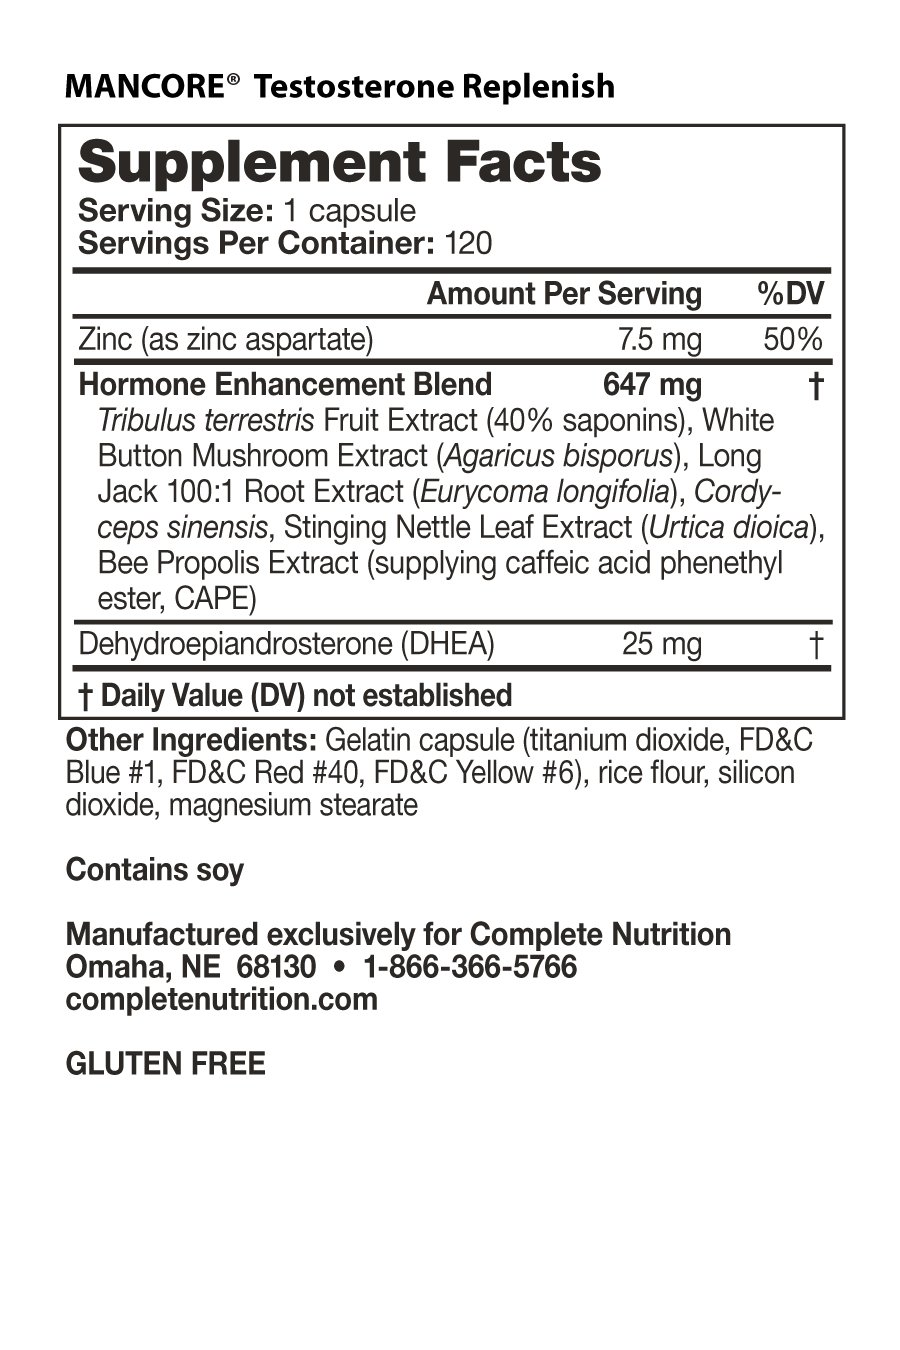 Mancore 2-Pack - Nutrition Facts